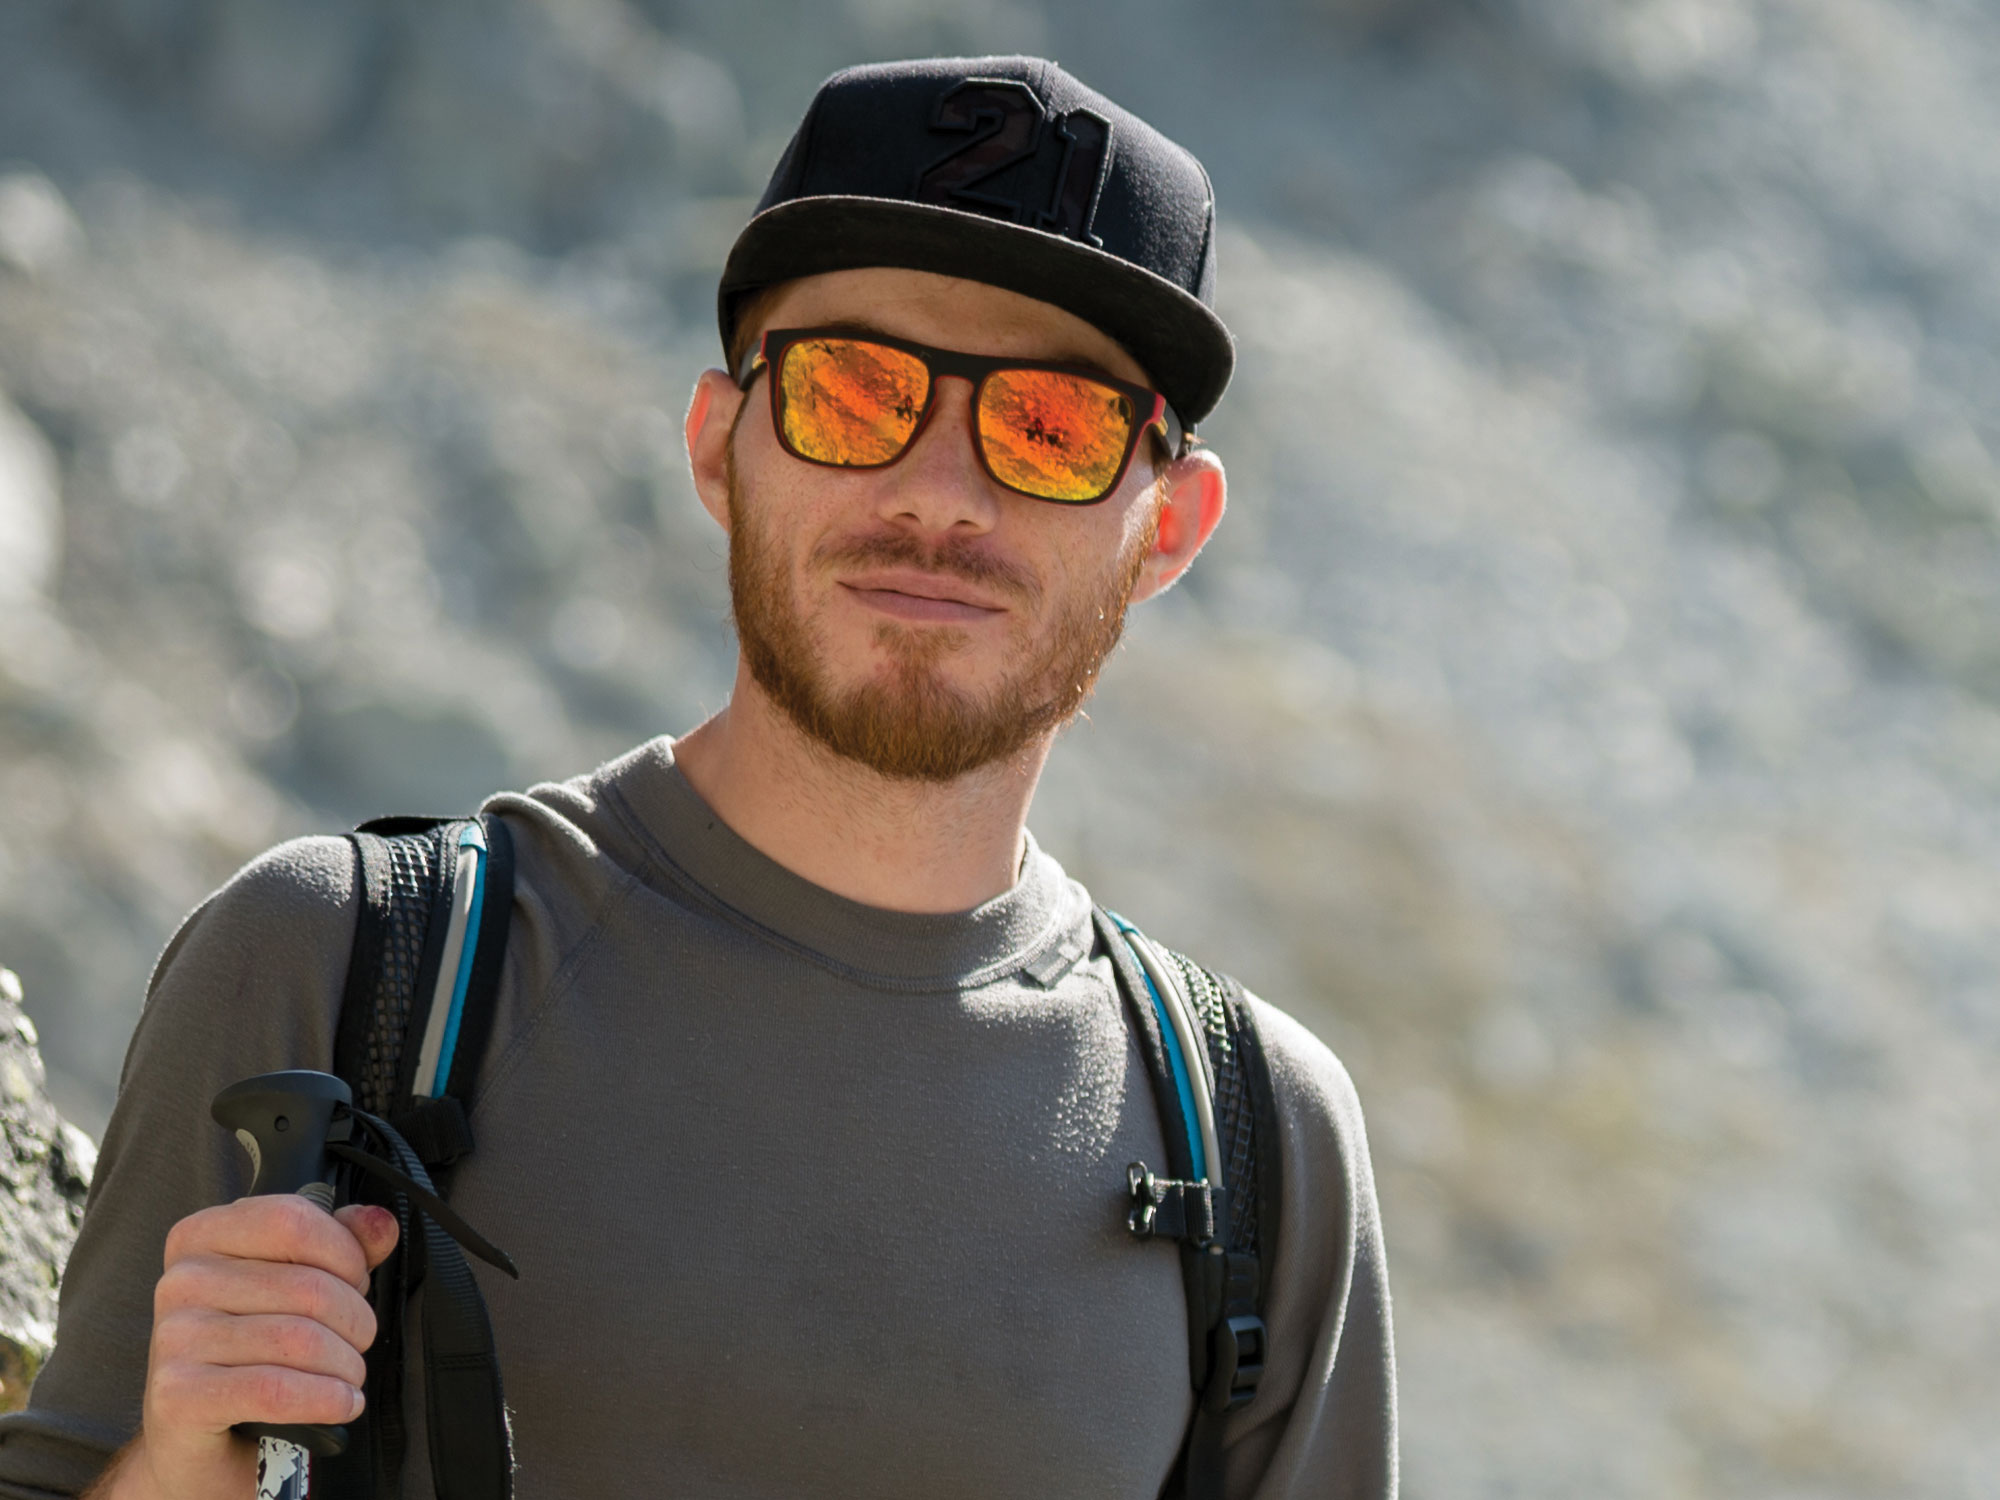 Active - Aspect Active combines the latest styling from our Australian beach culture trends coupled with sports specific designs offering a sunglass for any activity.